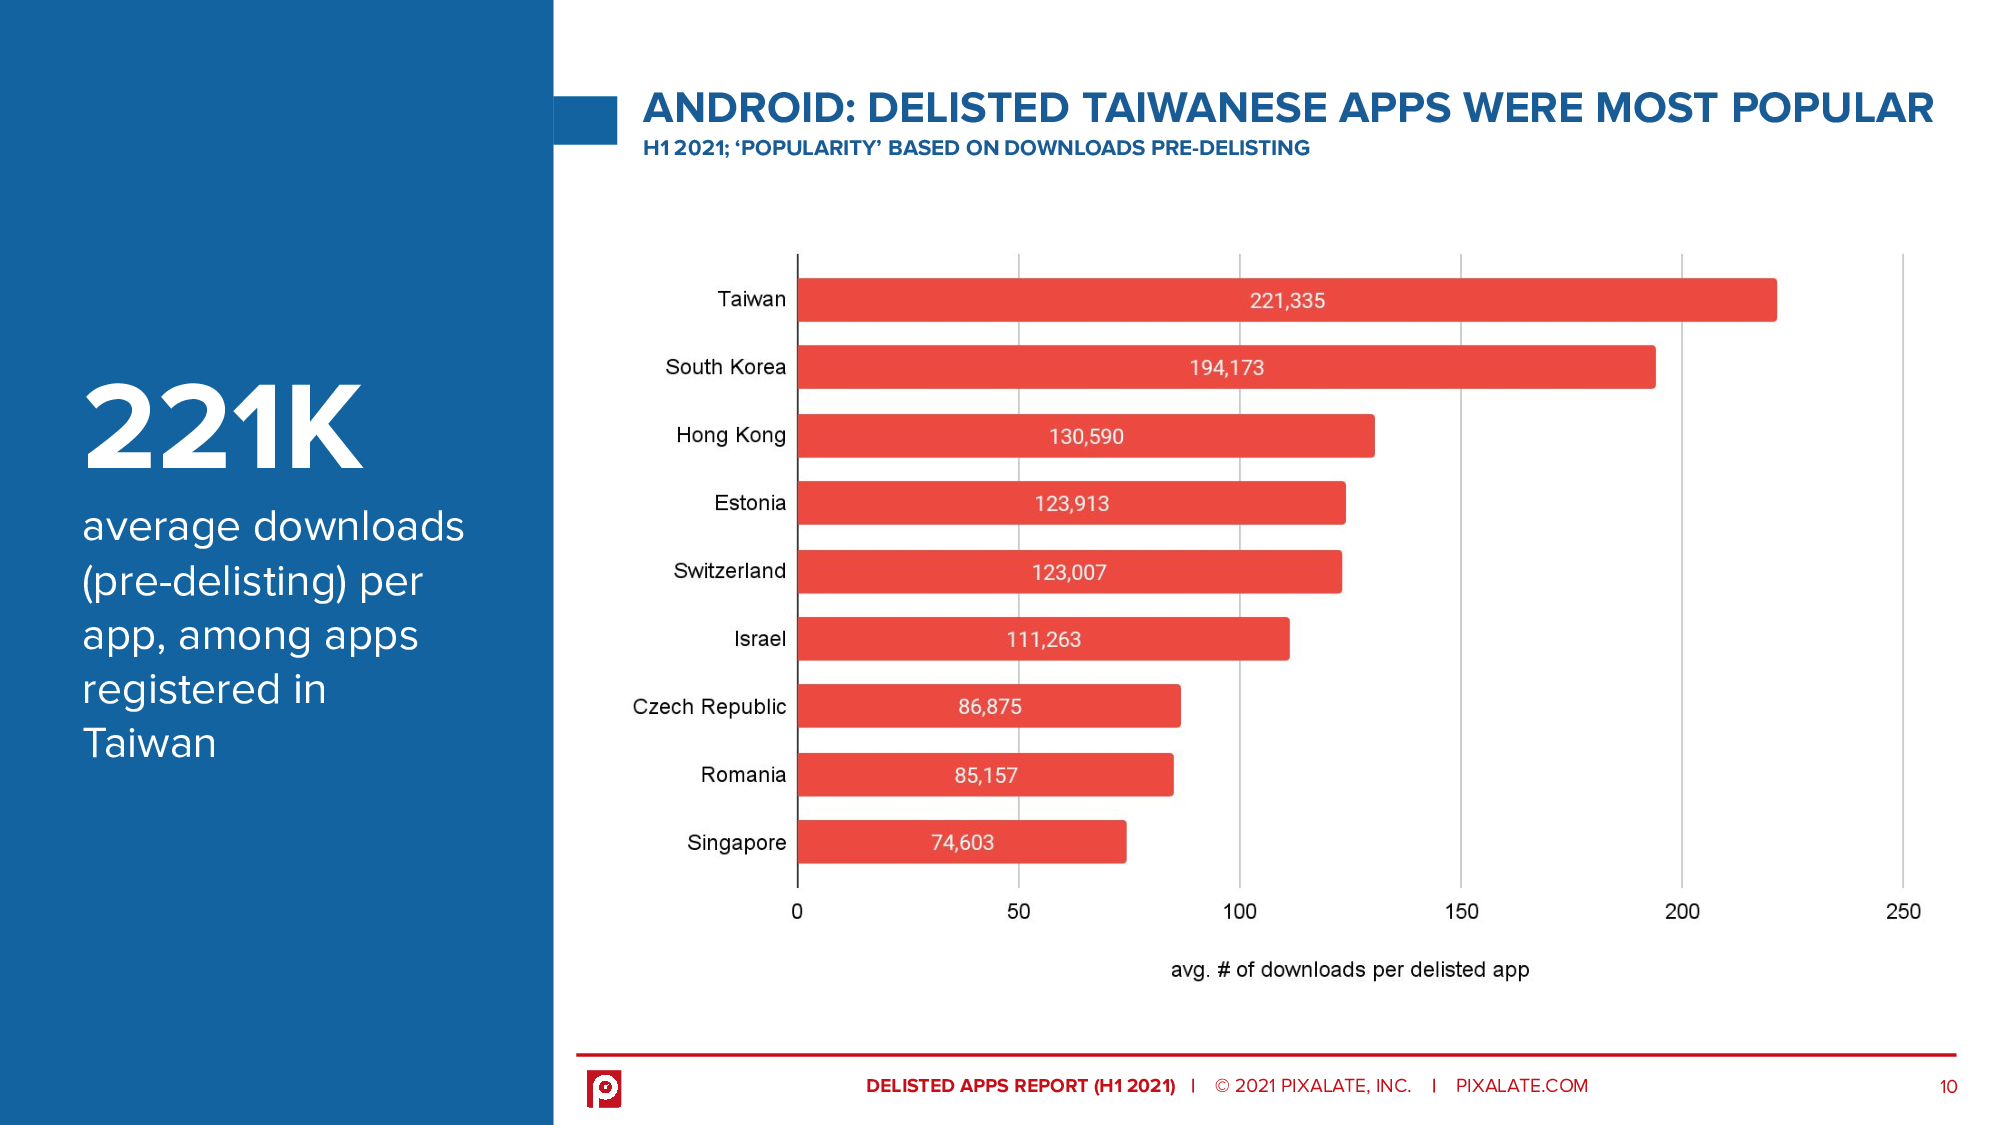 ANDROID: DELISTED TAIWANESE APPS WERE MOST POPULAR